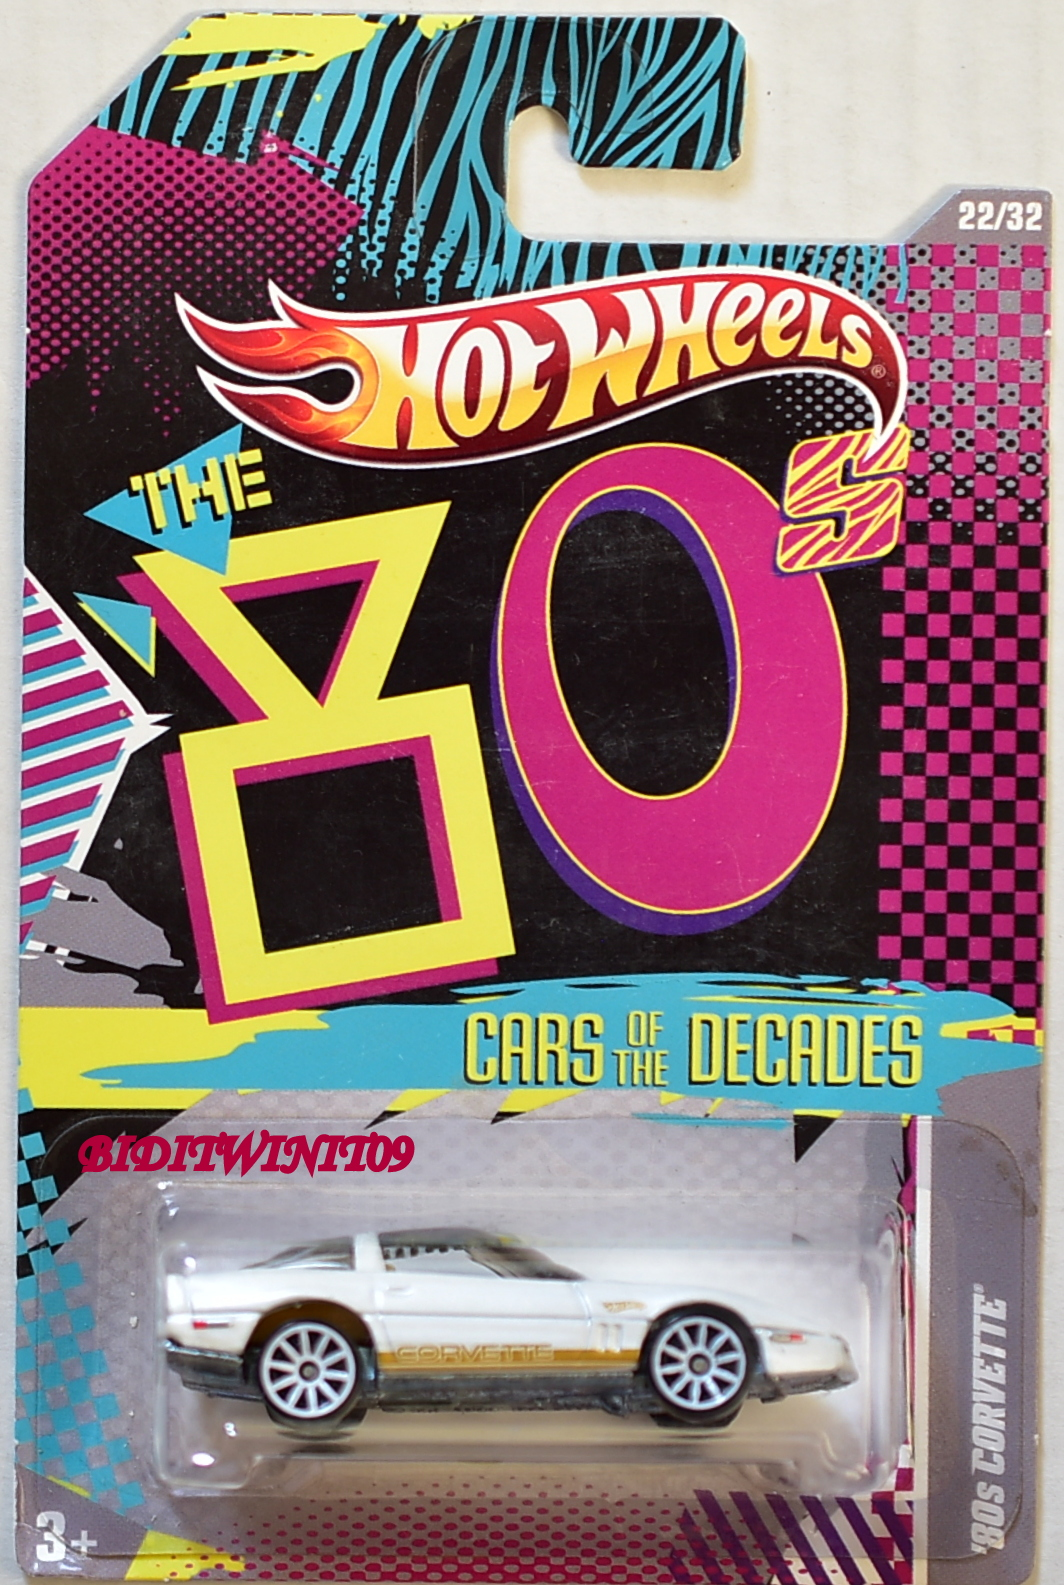 HOT WHEELS 2011 THE 80'S CARS OF THE DECADES '80S CORVETTE WHITE